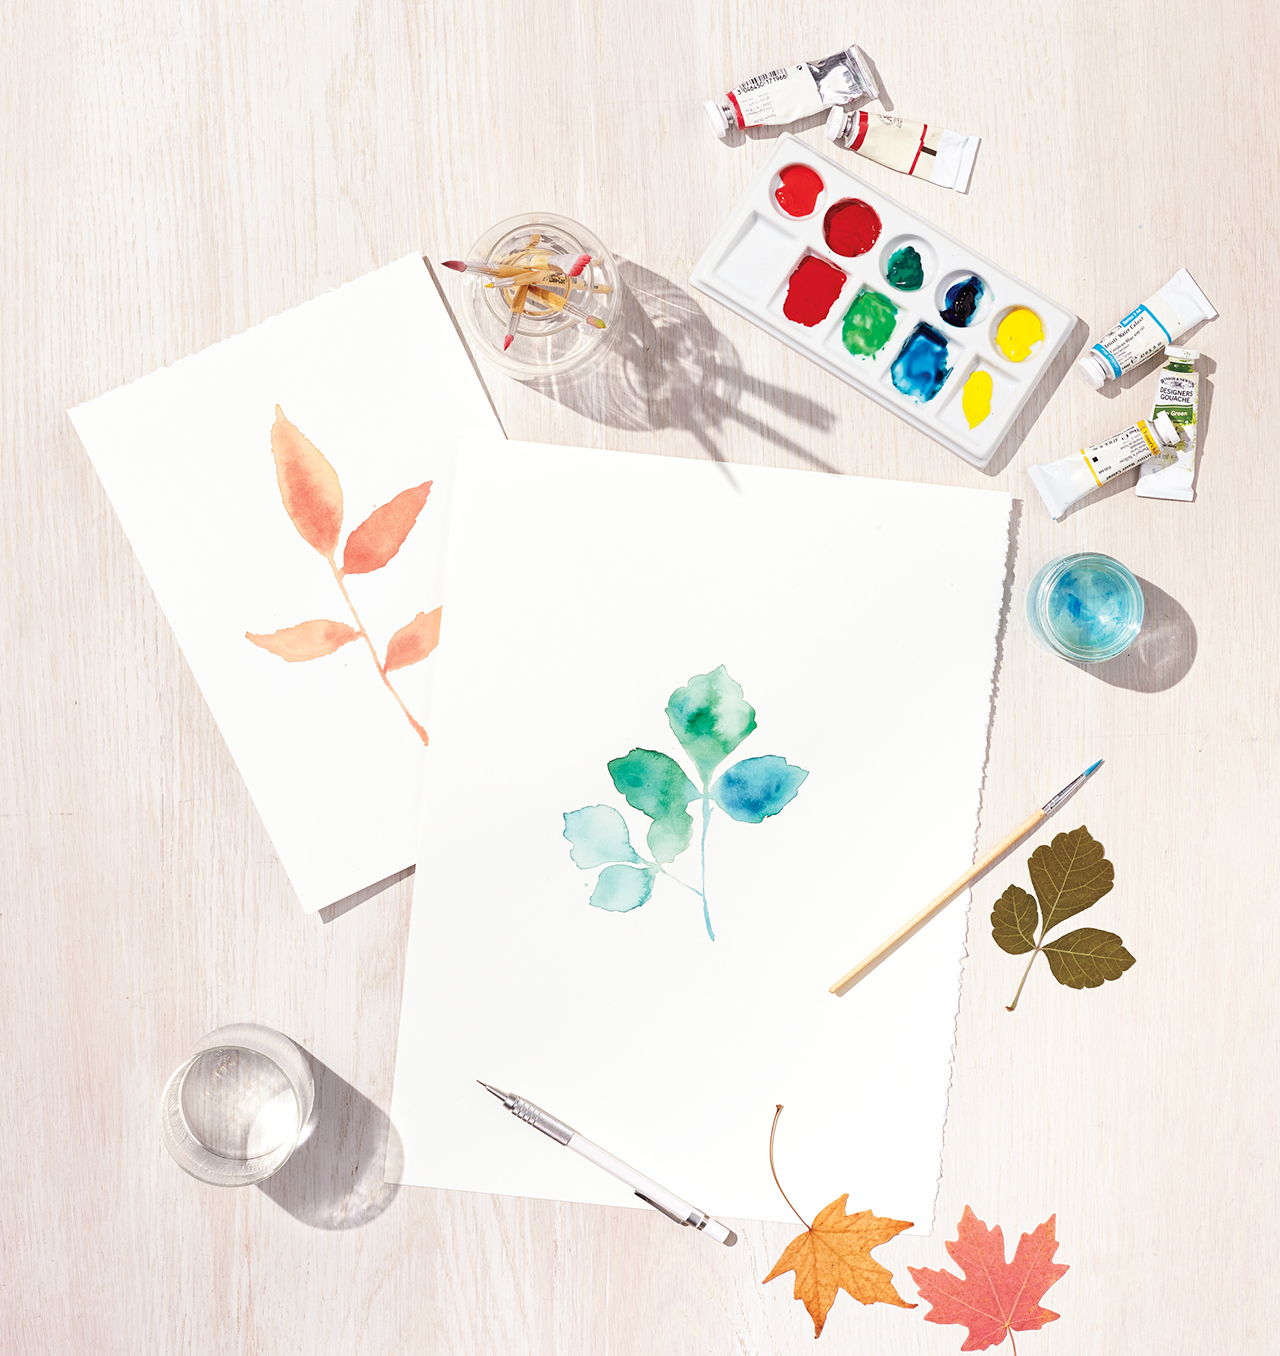 Three Reasons Why Arts and Crafts Are Important for Kids